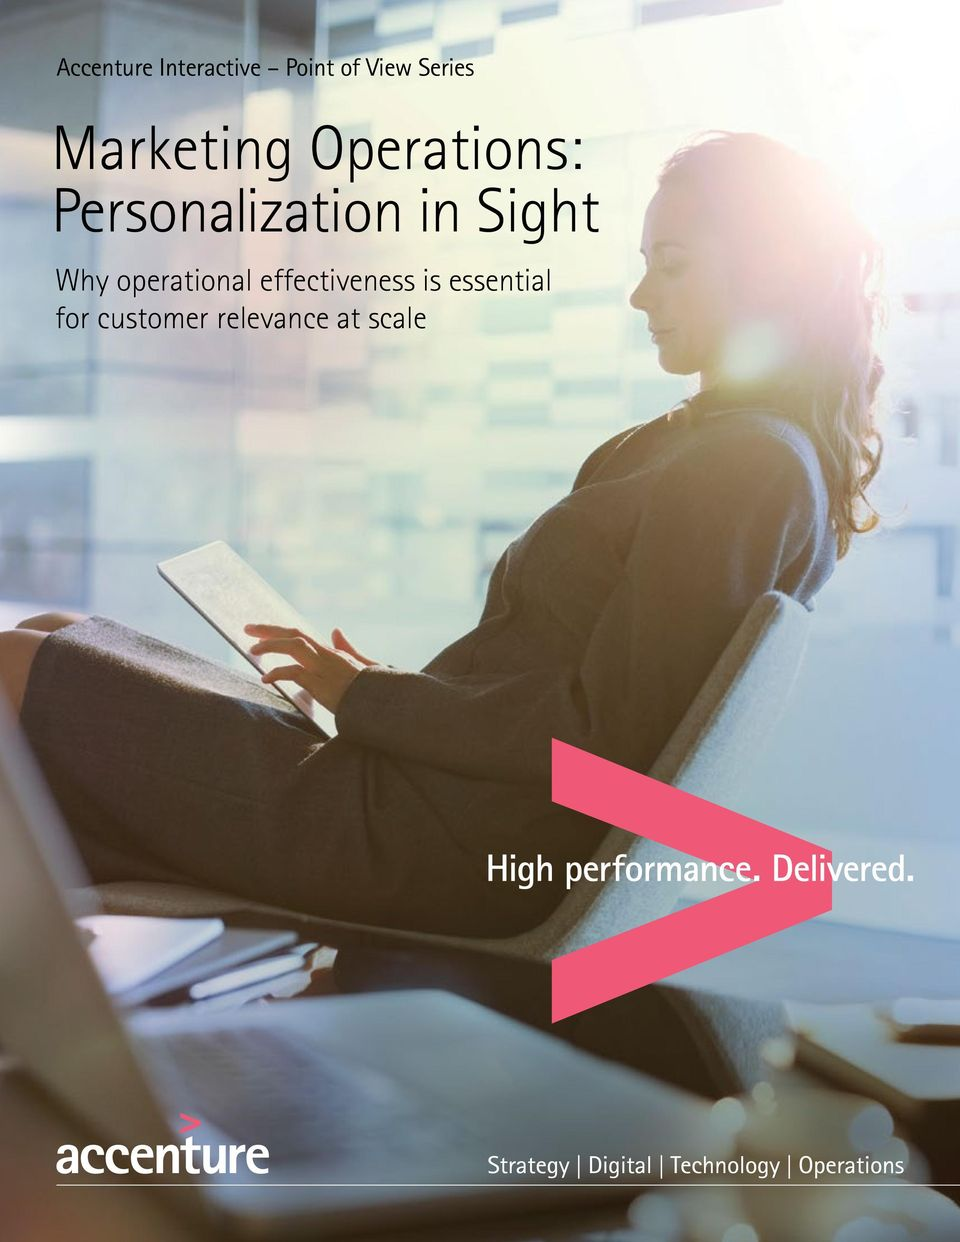 Personalization in Sight Why operational